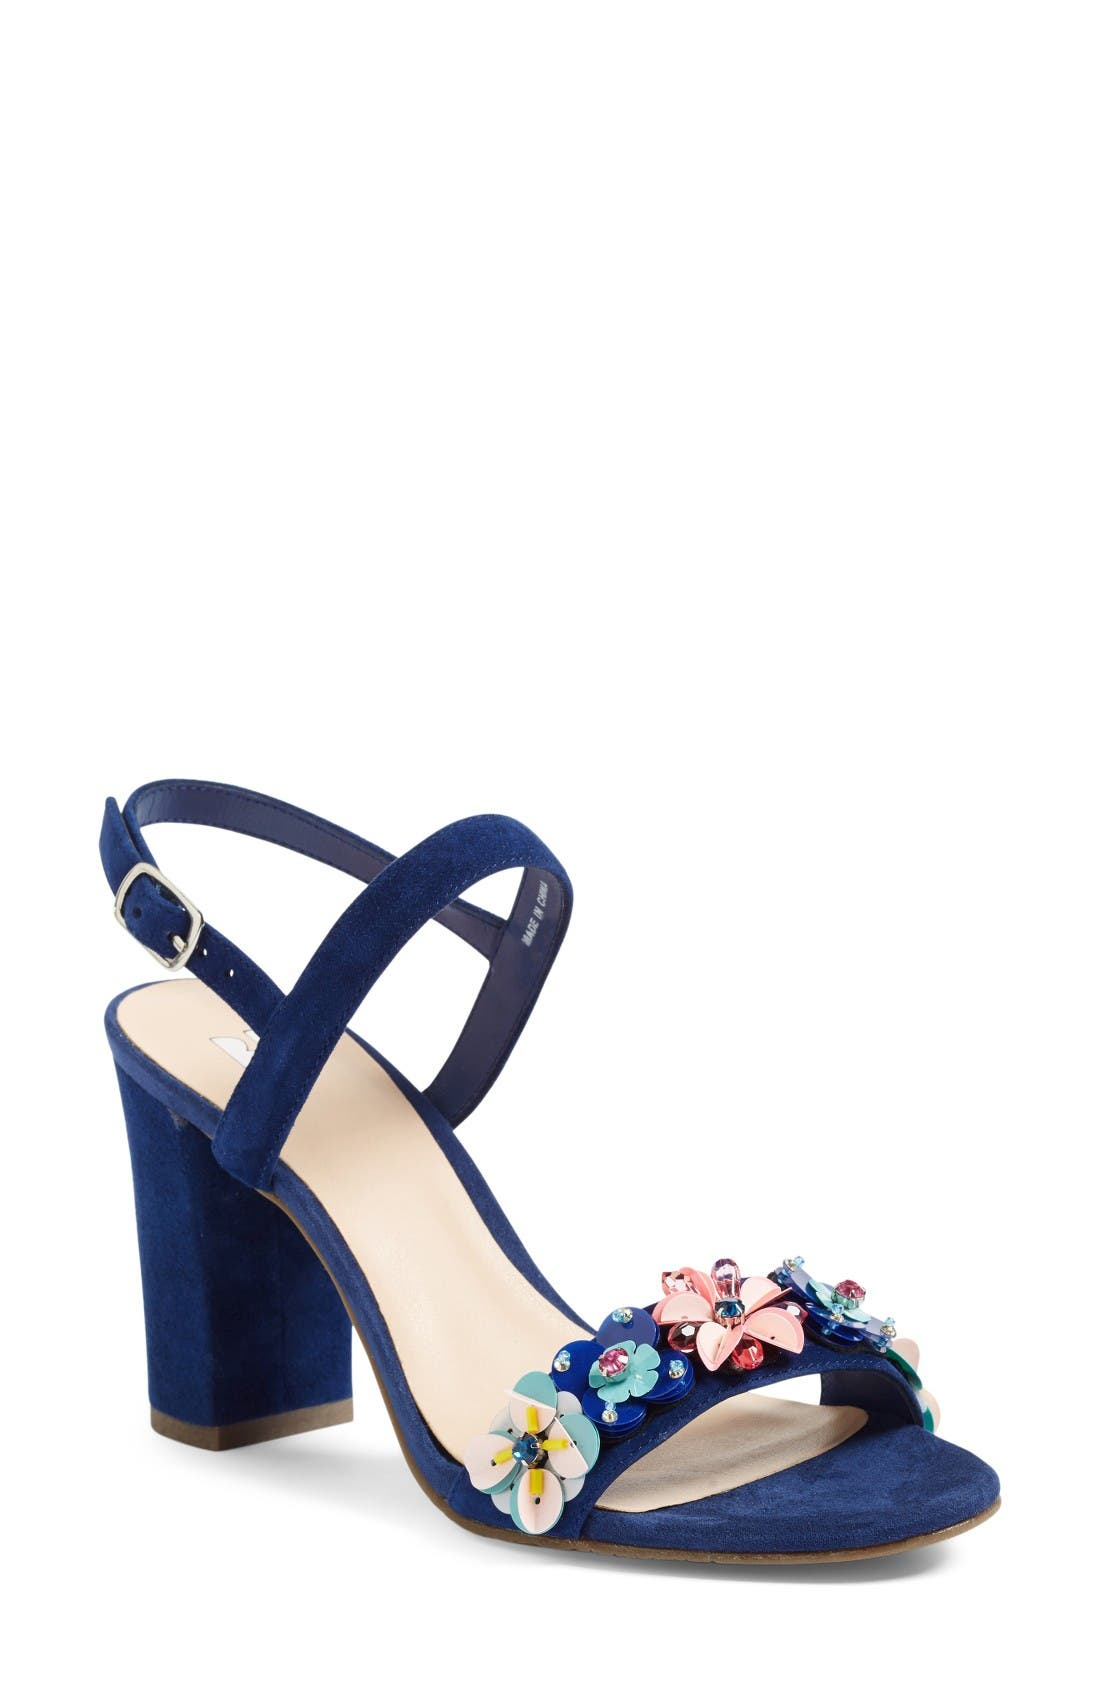 Alternate Image 1 Selected - BP. Lula Block Heel Slingback Sandal (Women)